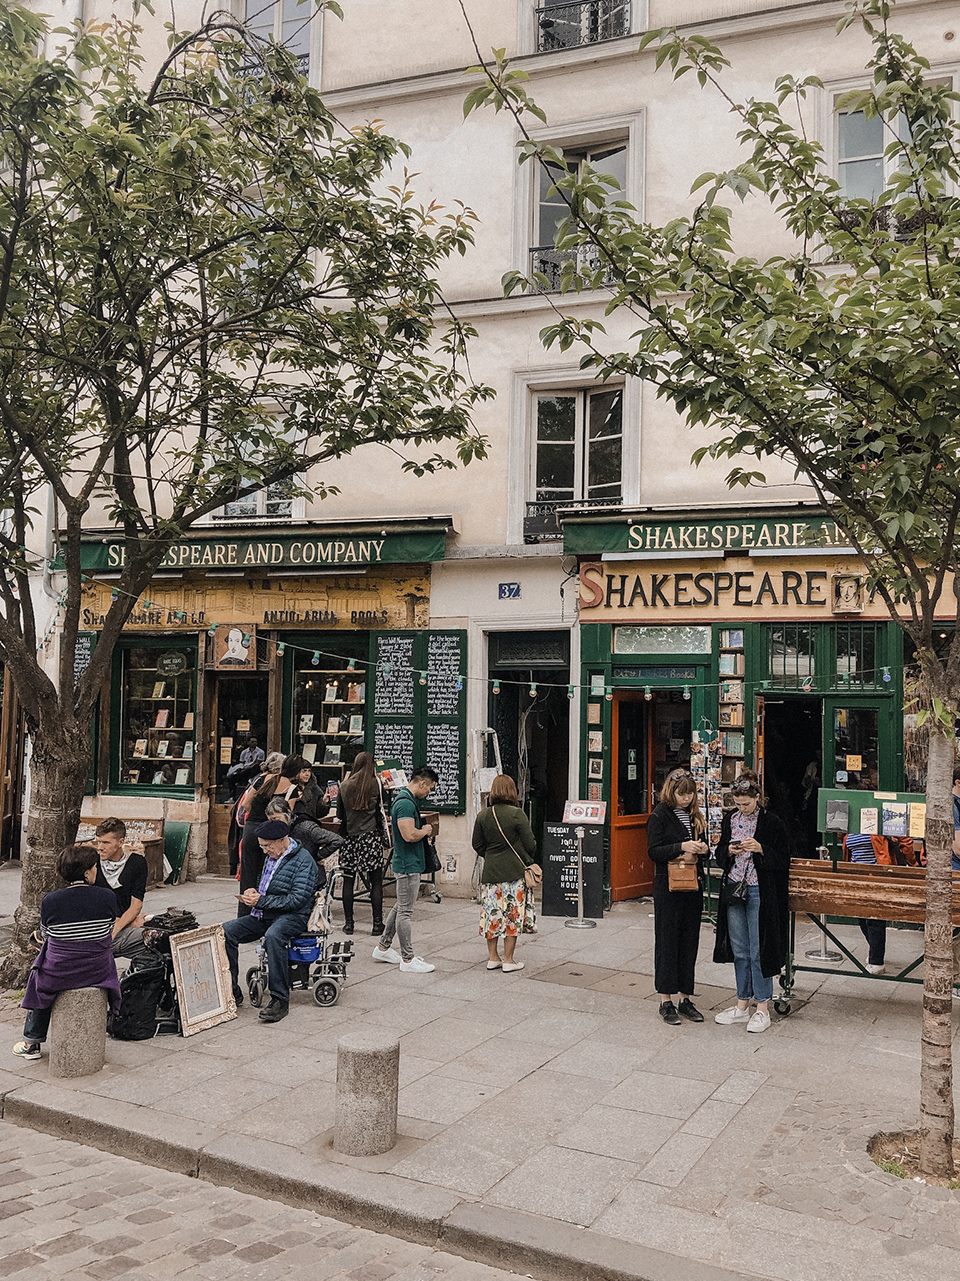 The outside of the Shakespeare and Company bookshop in Paris